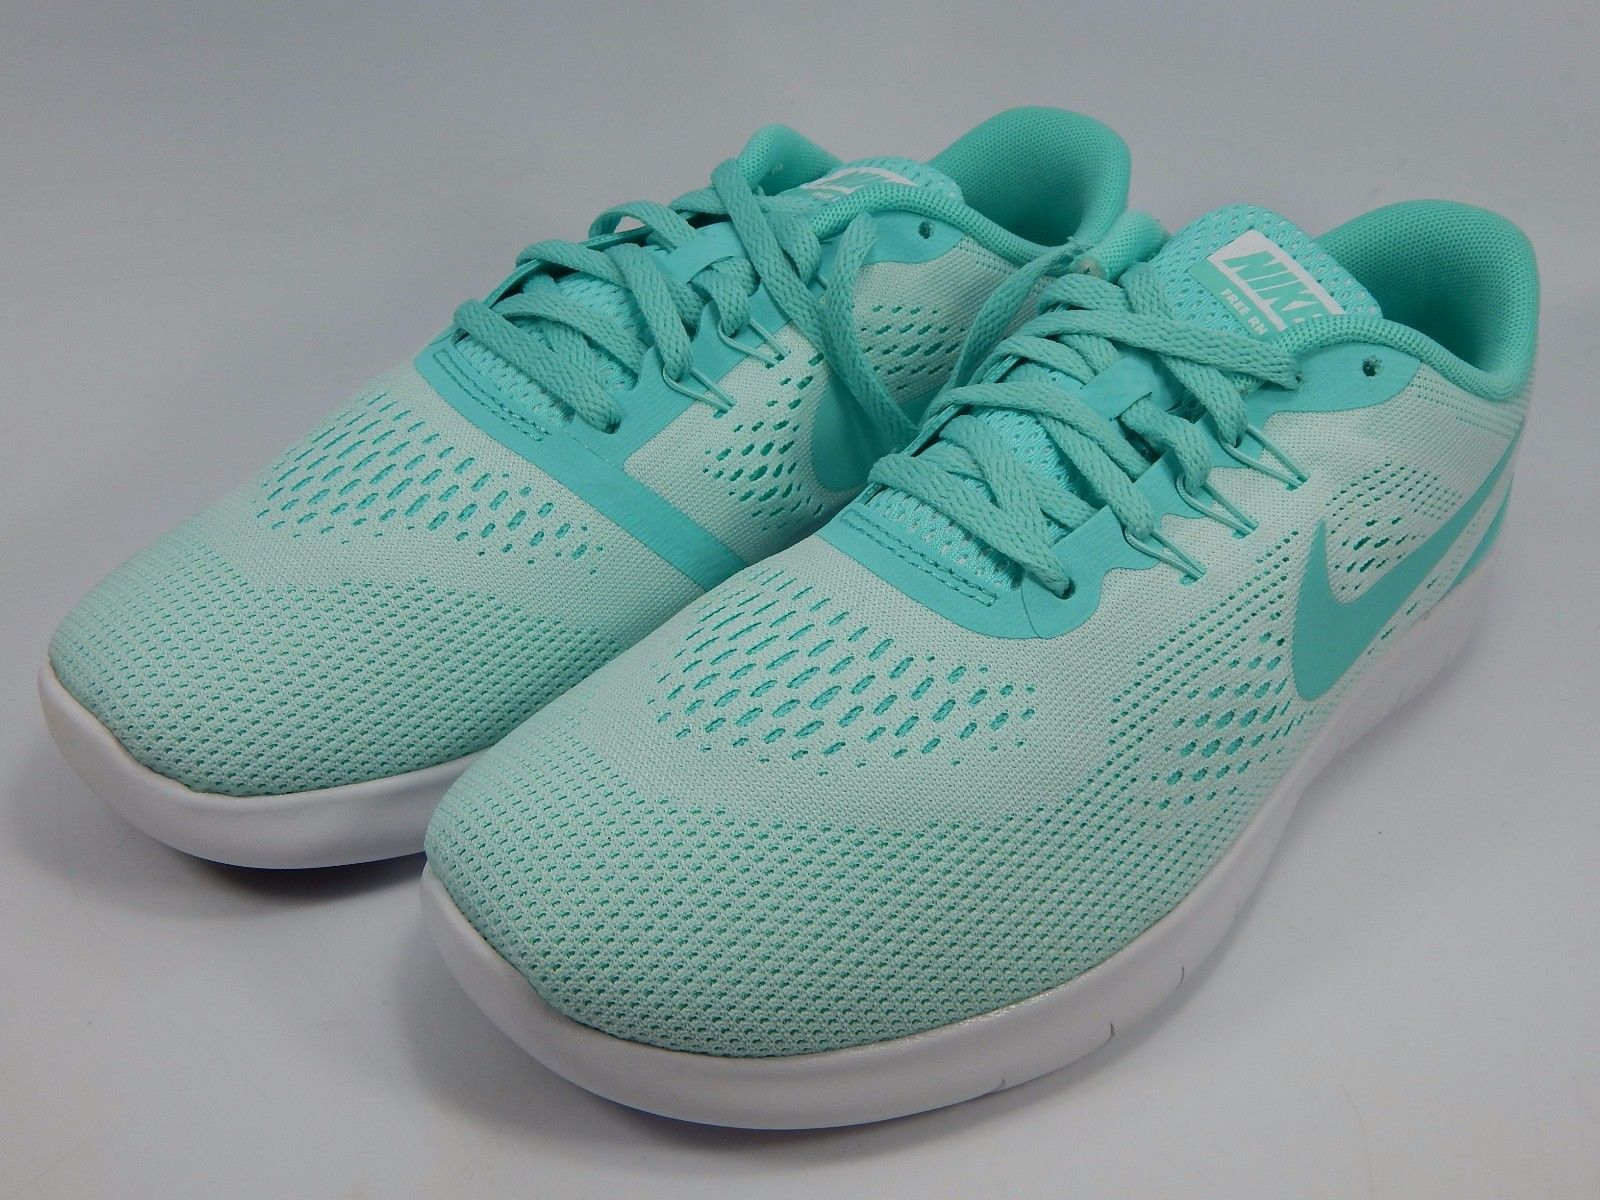 Nike Free RN Run Big Kid's Girl's Youth Shoes Size US 6 Y EU 38.5 833993-100